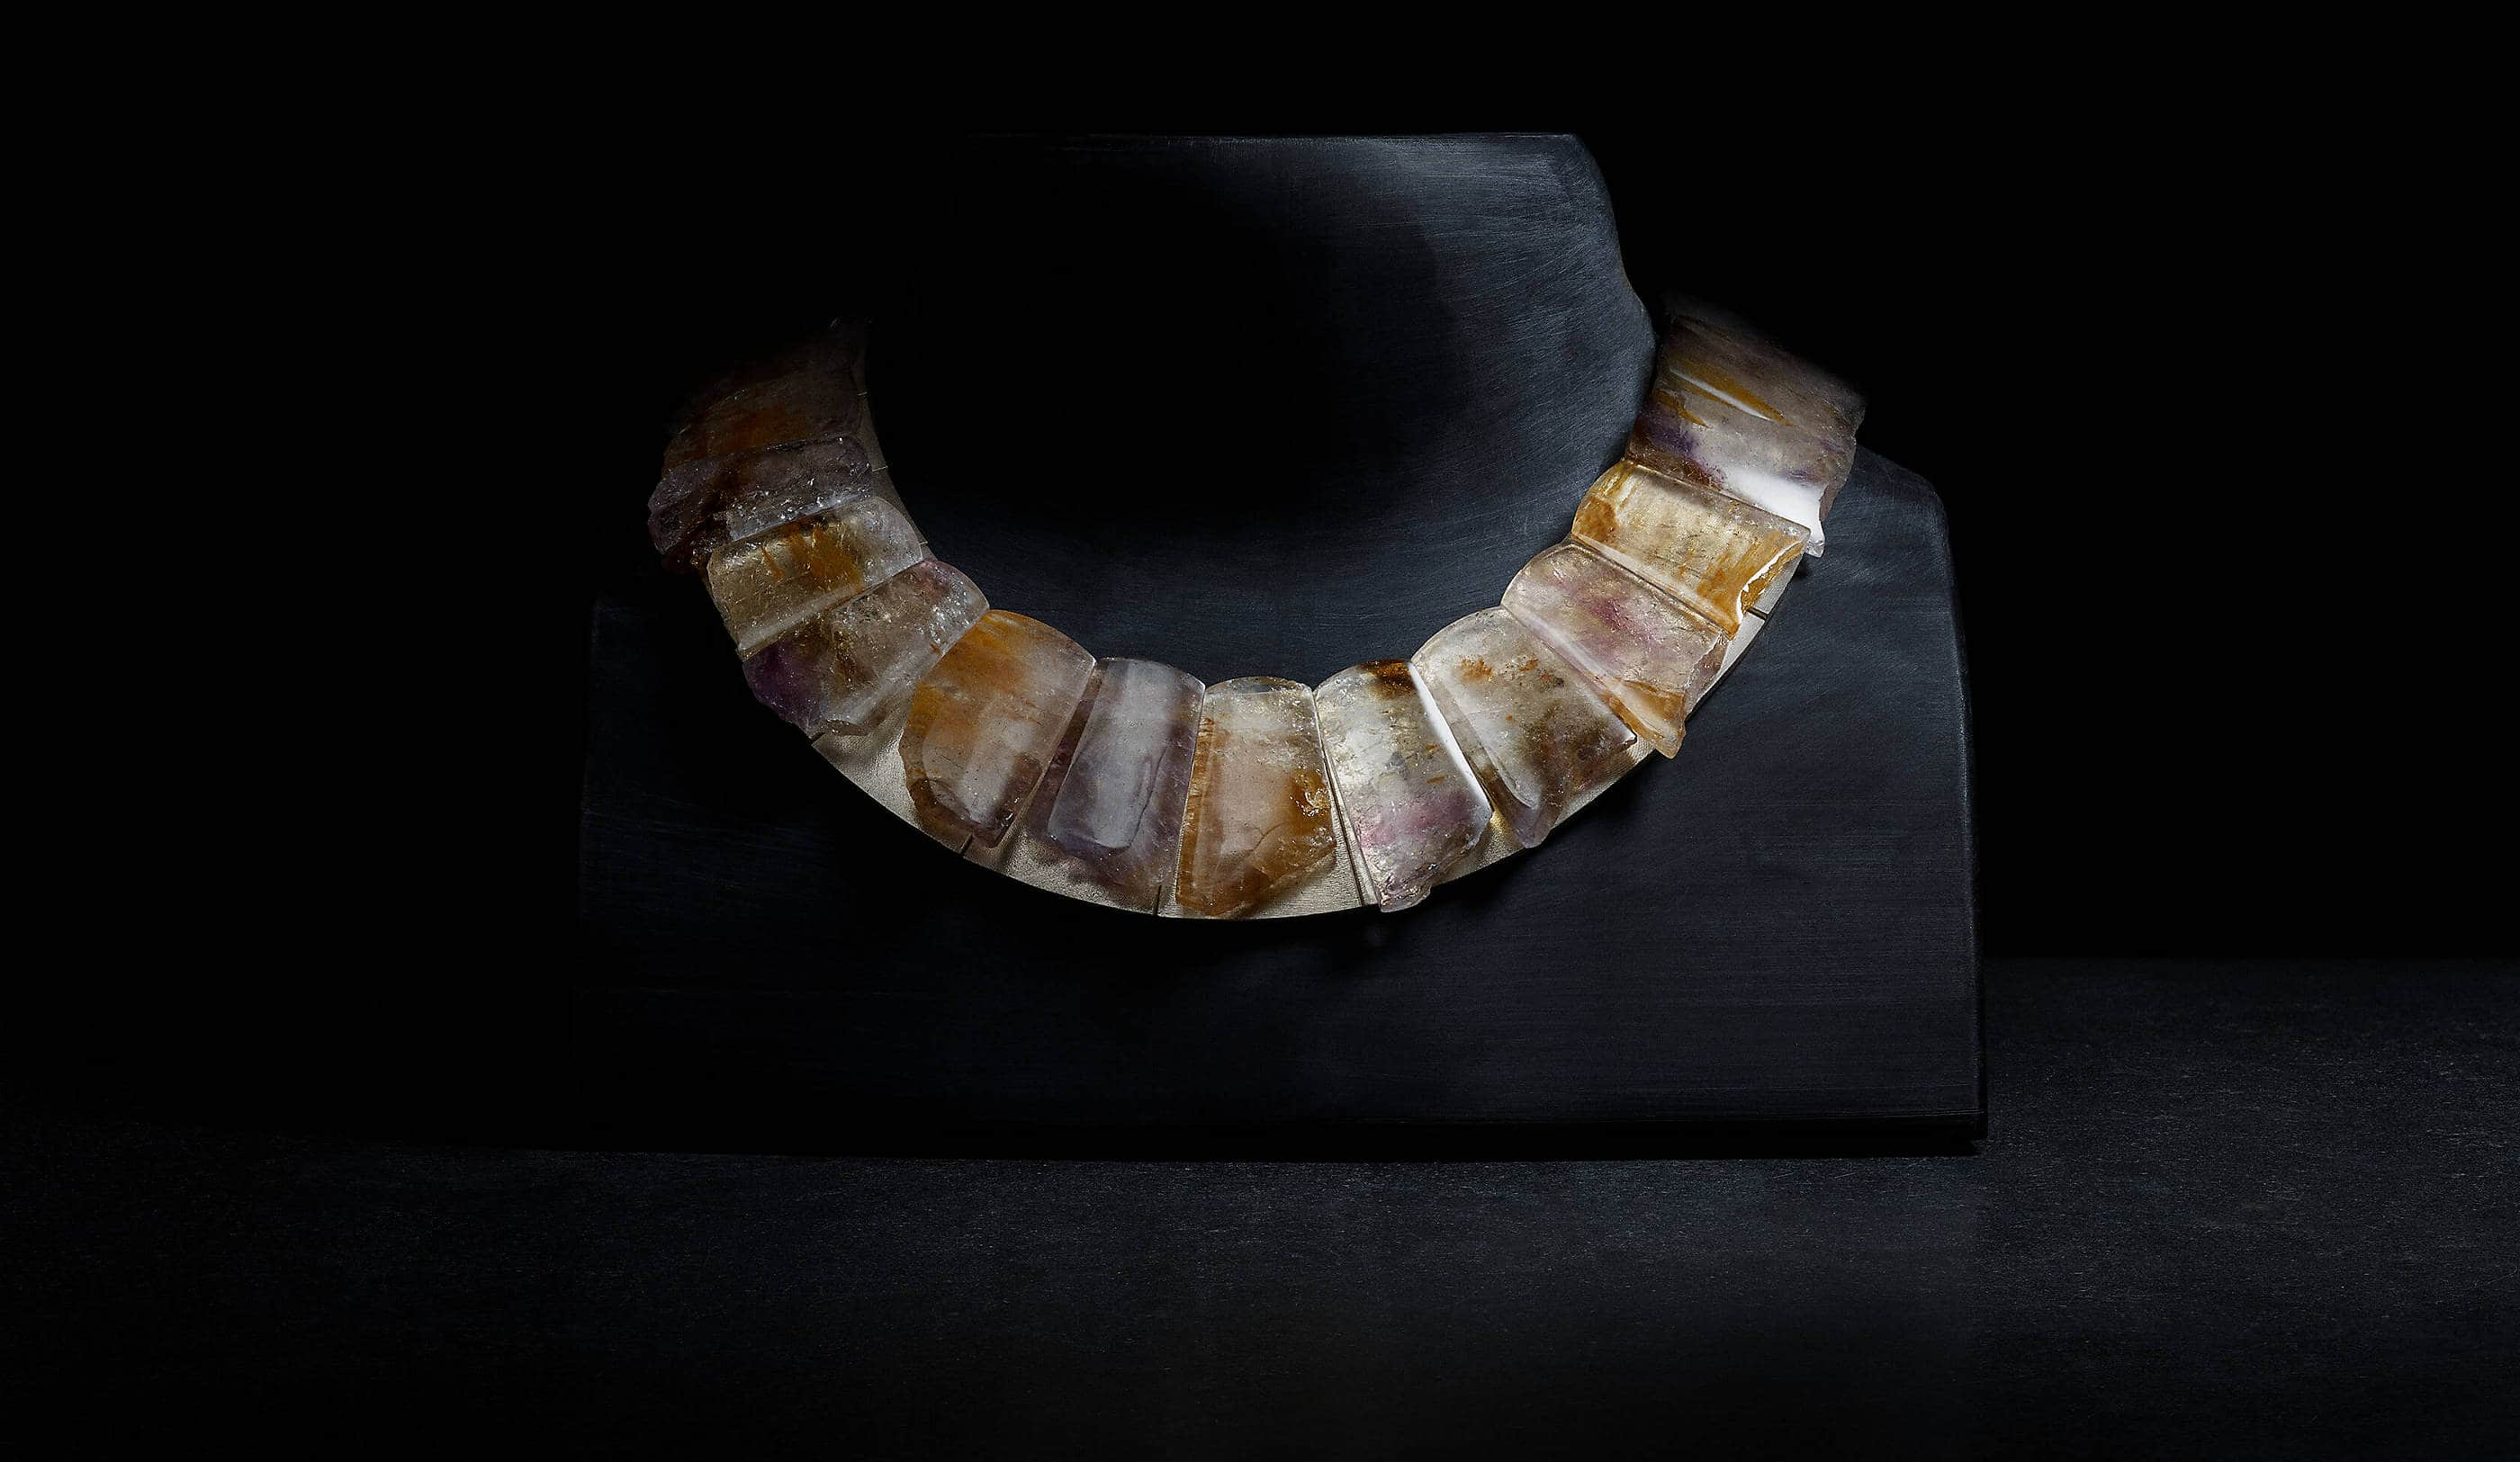 A image of a black neck form with a necklace design covered with pieces of cacoxenite.